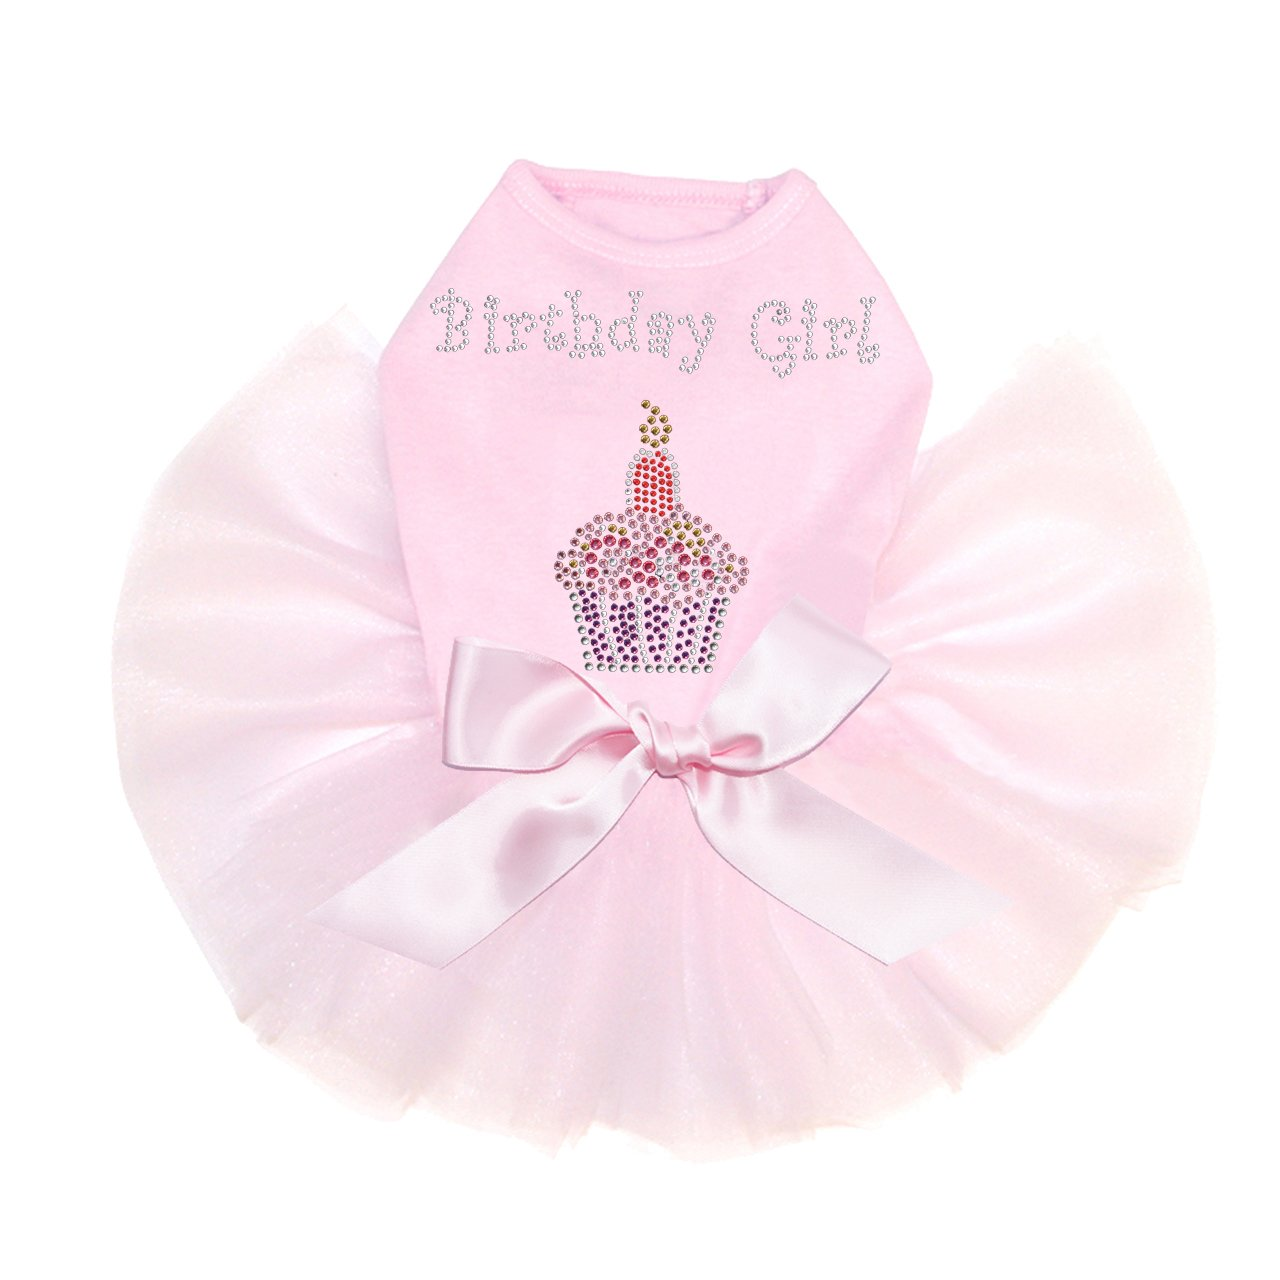 Birthday Girl - Dog Tutu Dress, S Pink by Dog in the Closet